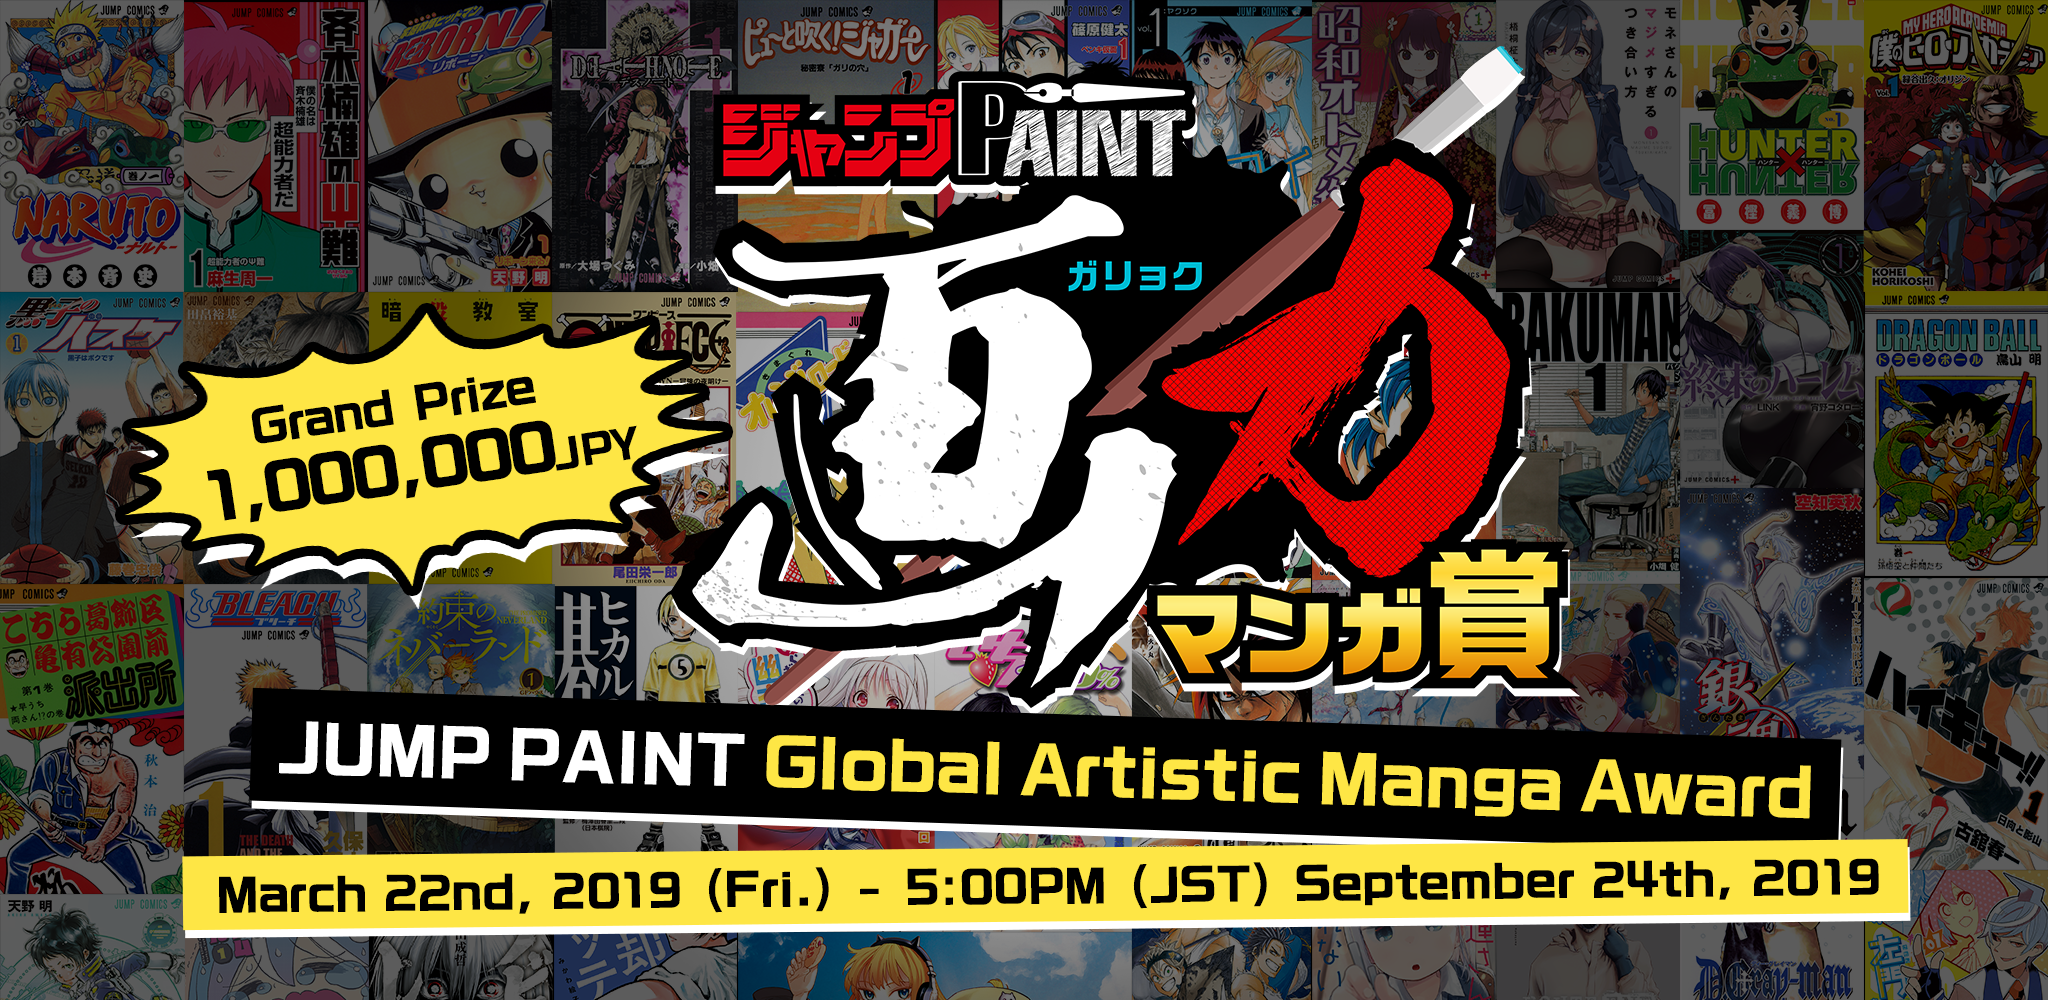 JUMP PAINT Global Artistic Manga Award | Contest - Medibang!